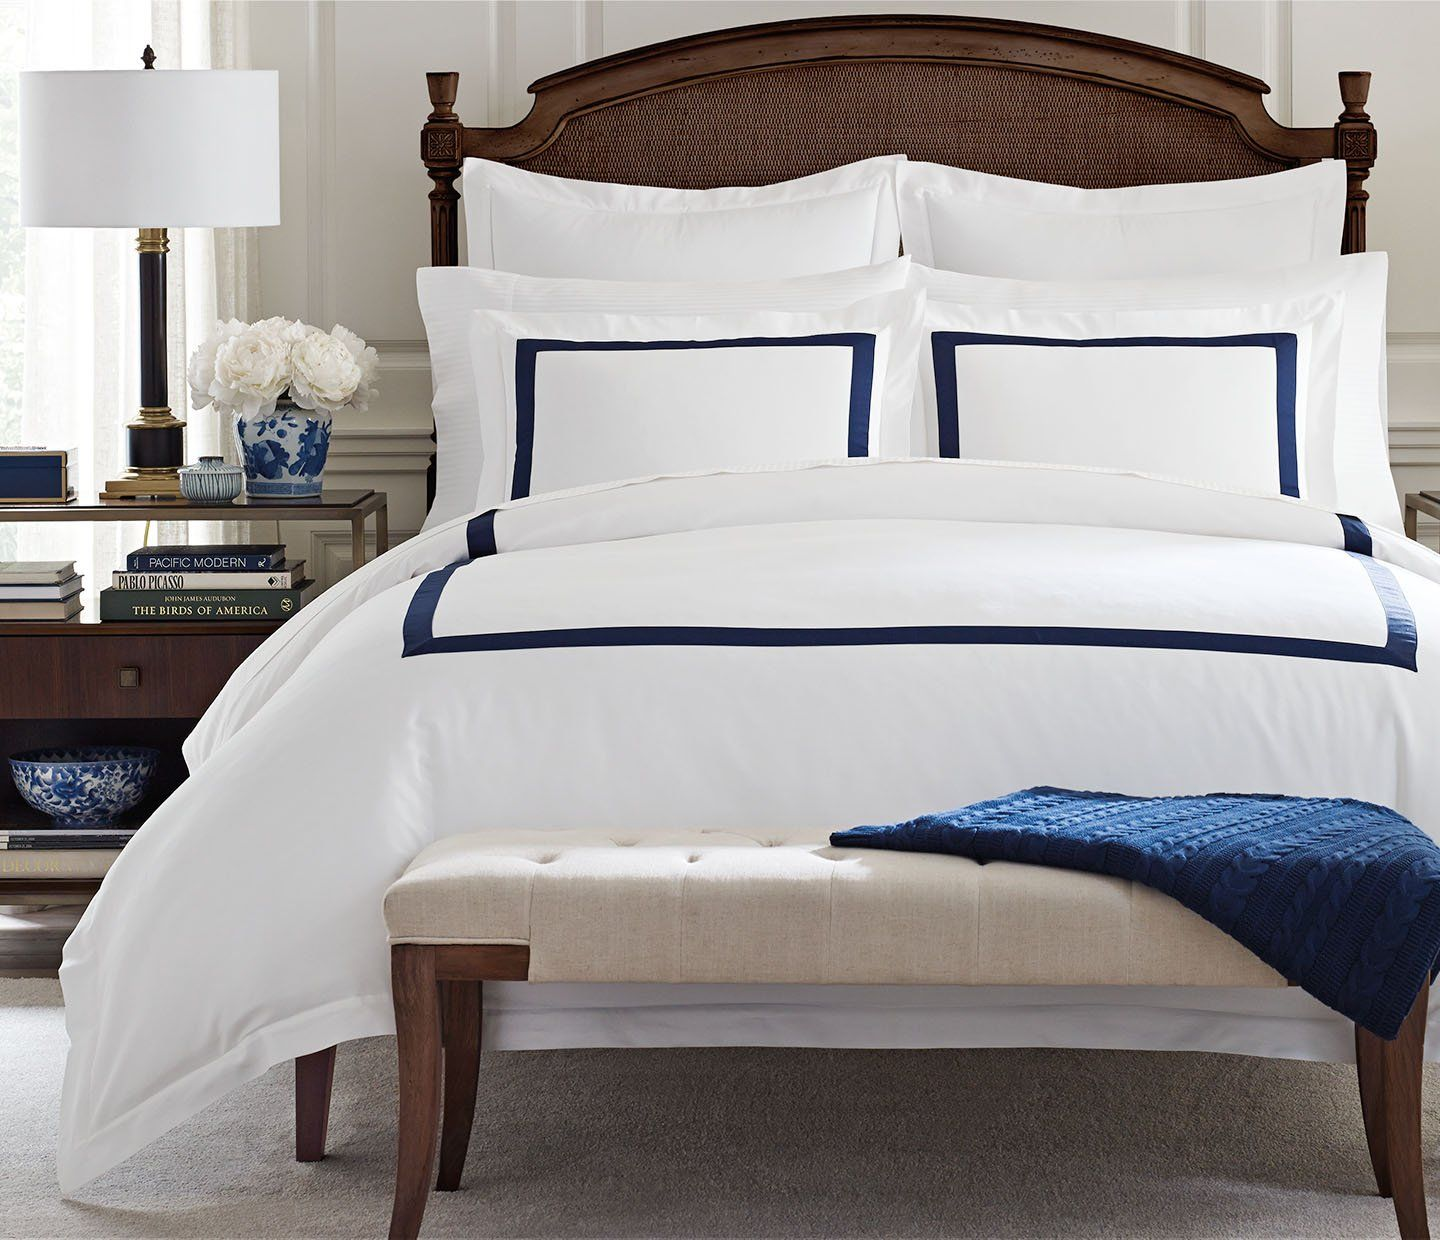 Modern Banded Duvet Covers in Dual Colors by Boll & Branch